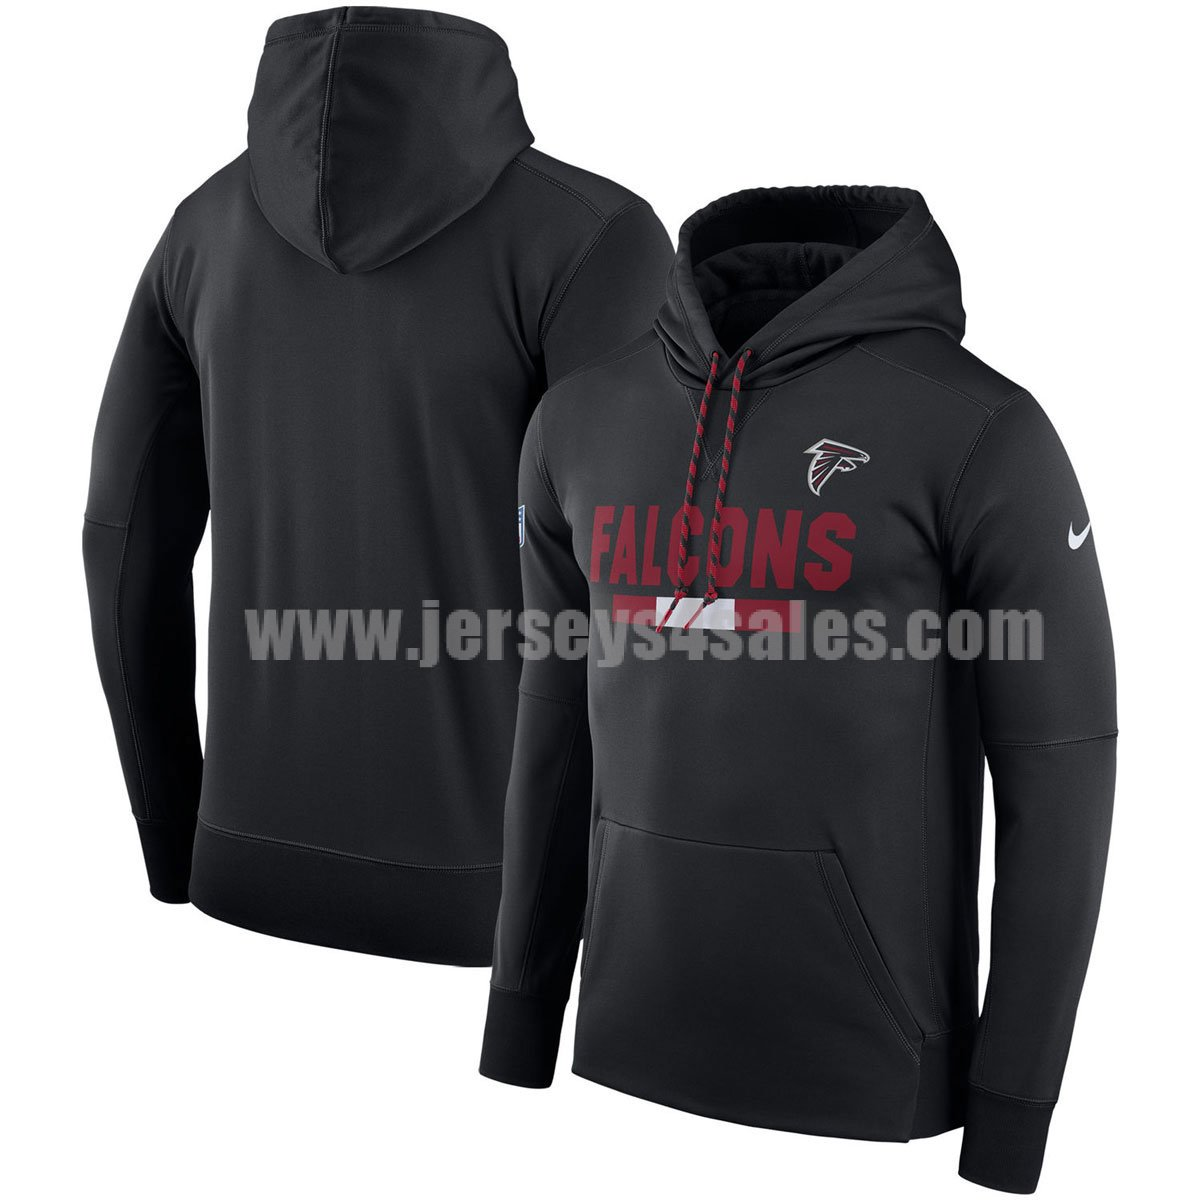 Men's Atlanta Falcons Black Nike Sideline Team Name Performance Pullover NFL Hoodie